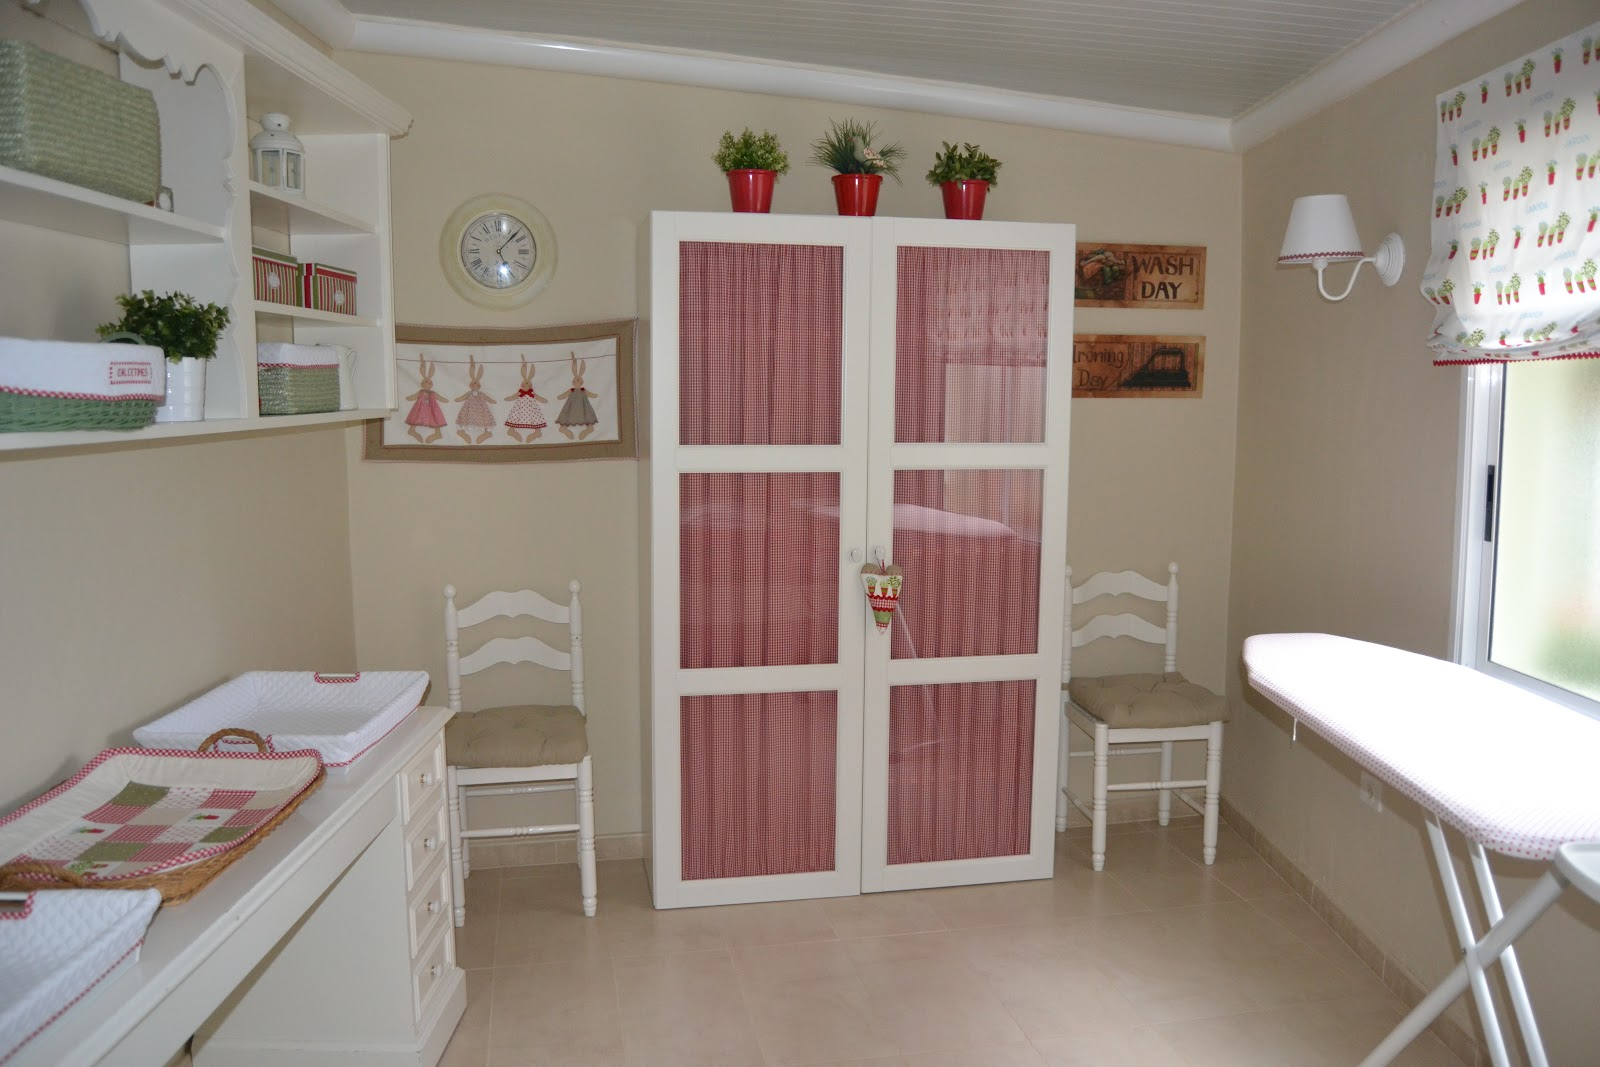 Cuarto de lavado y plancha on pinterest laundry rooms - Cuarto de lavado ...